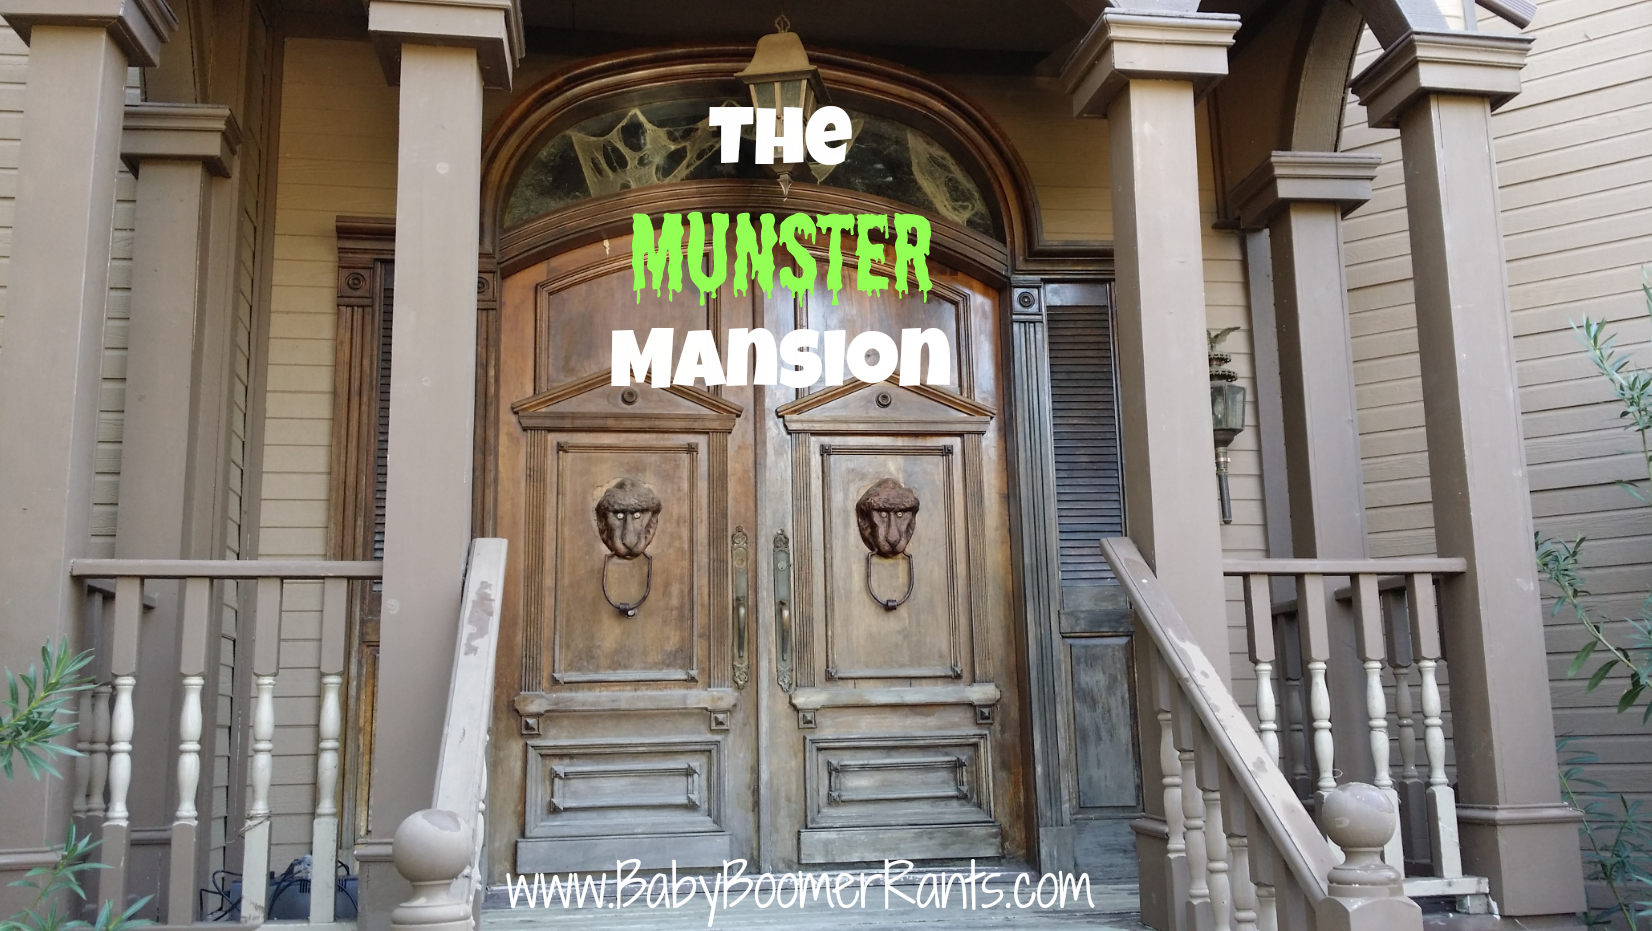 Tour Of The Munster Mansion